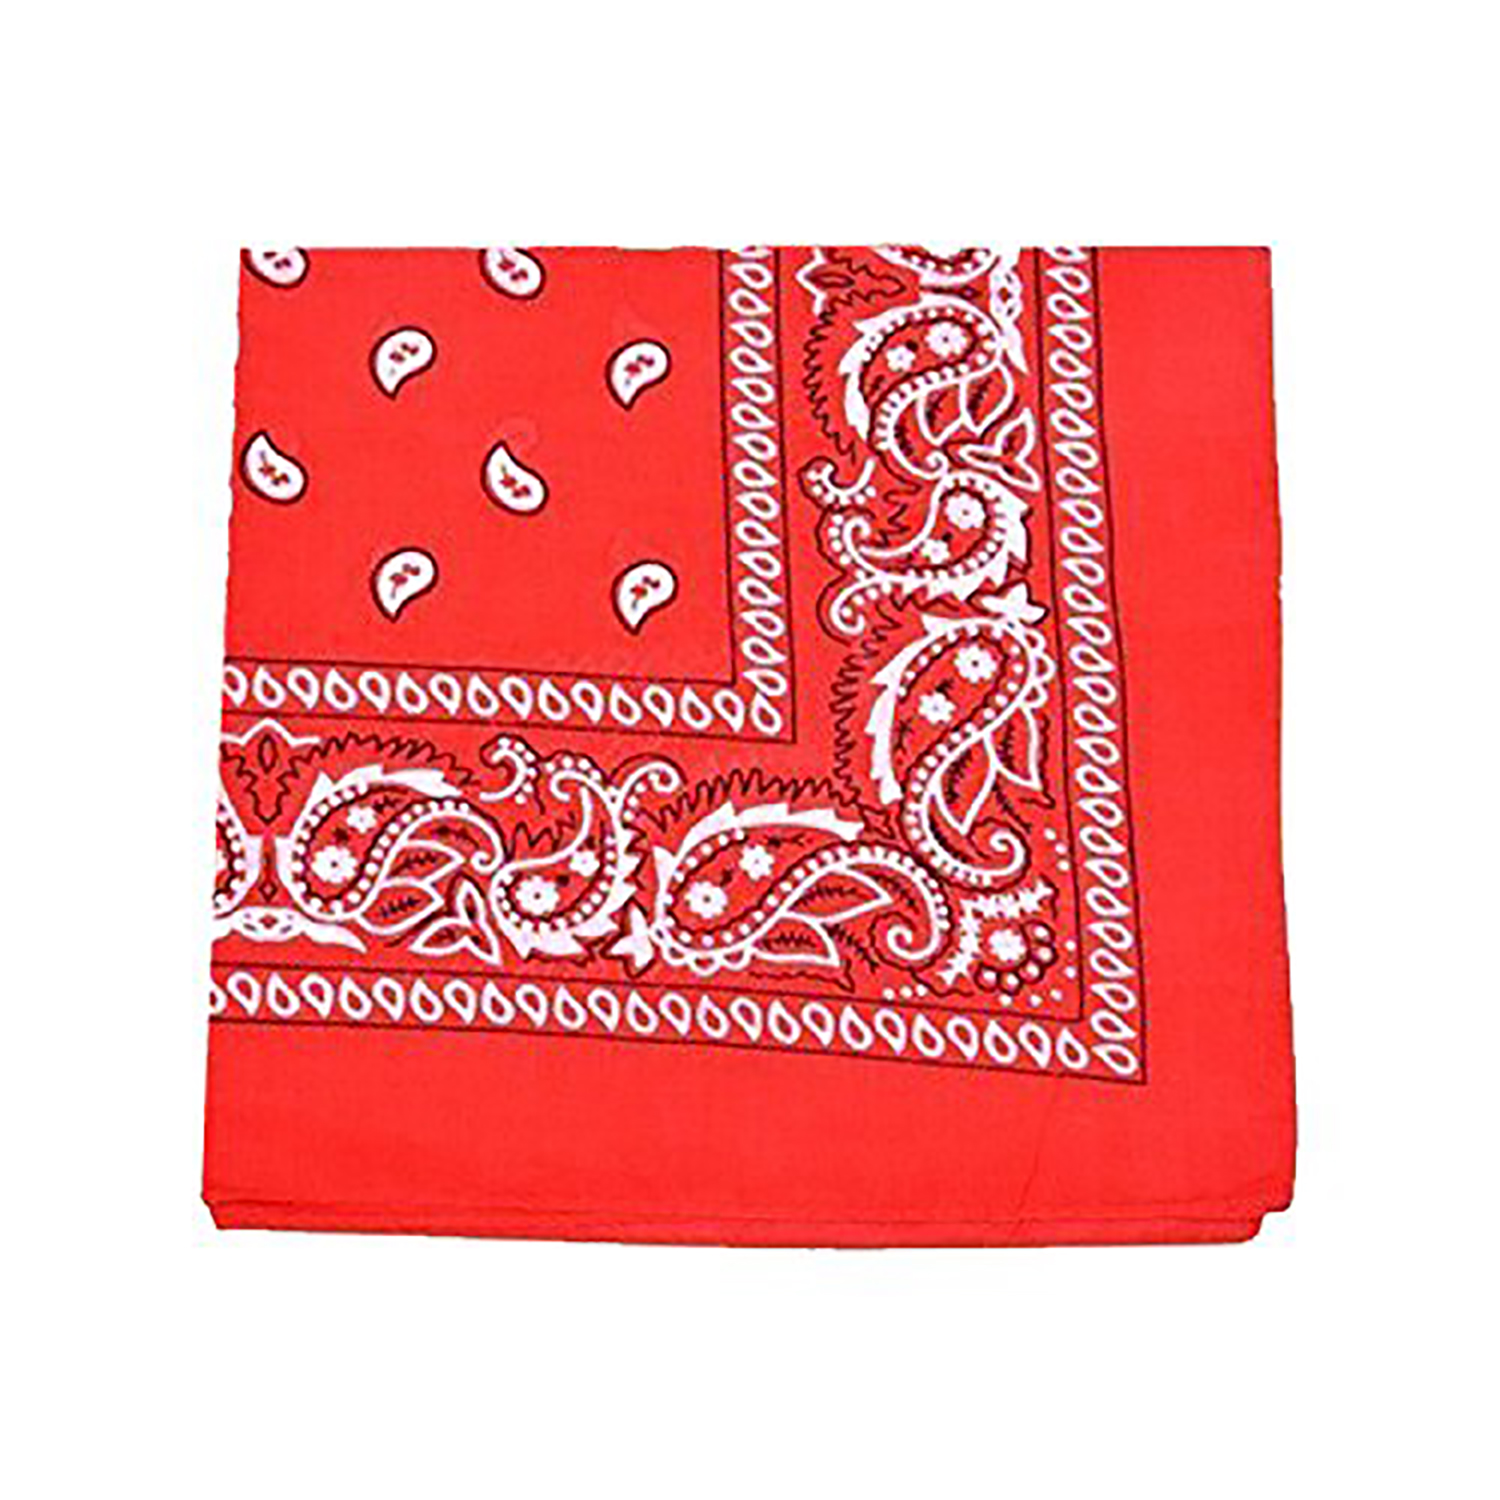 Pack of 200 Paisley 100% Cotton Bandanas Novelty 22 in He...